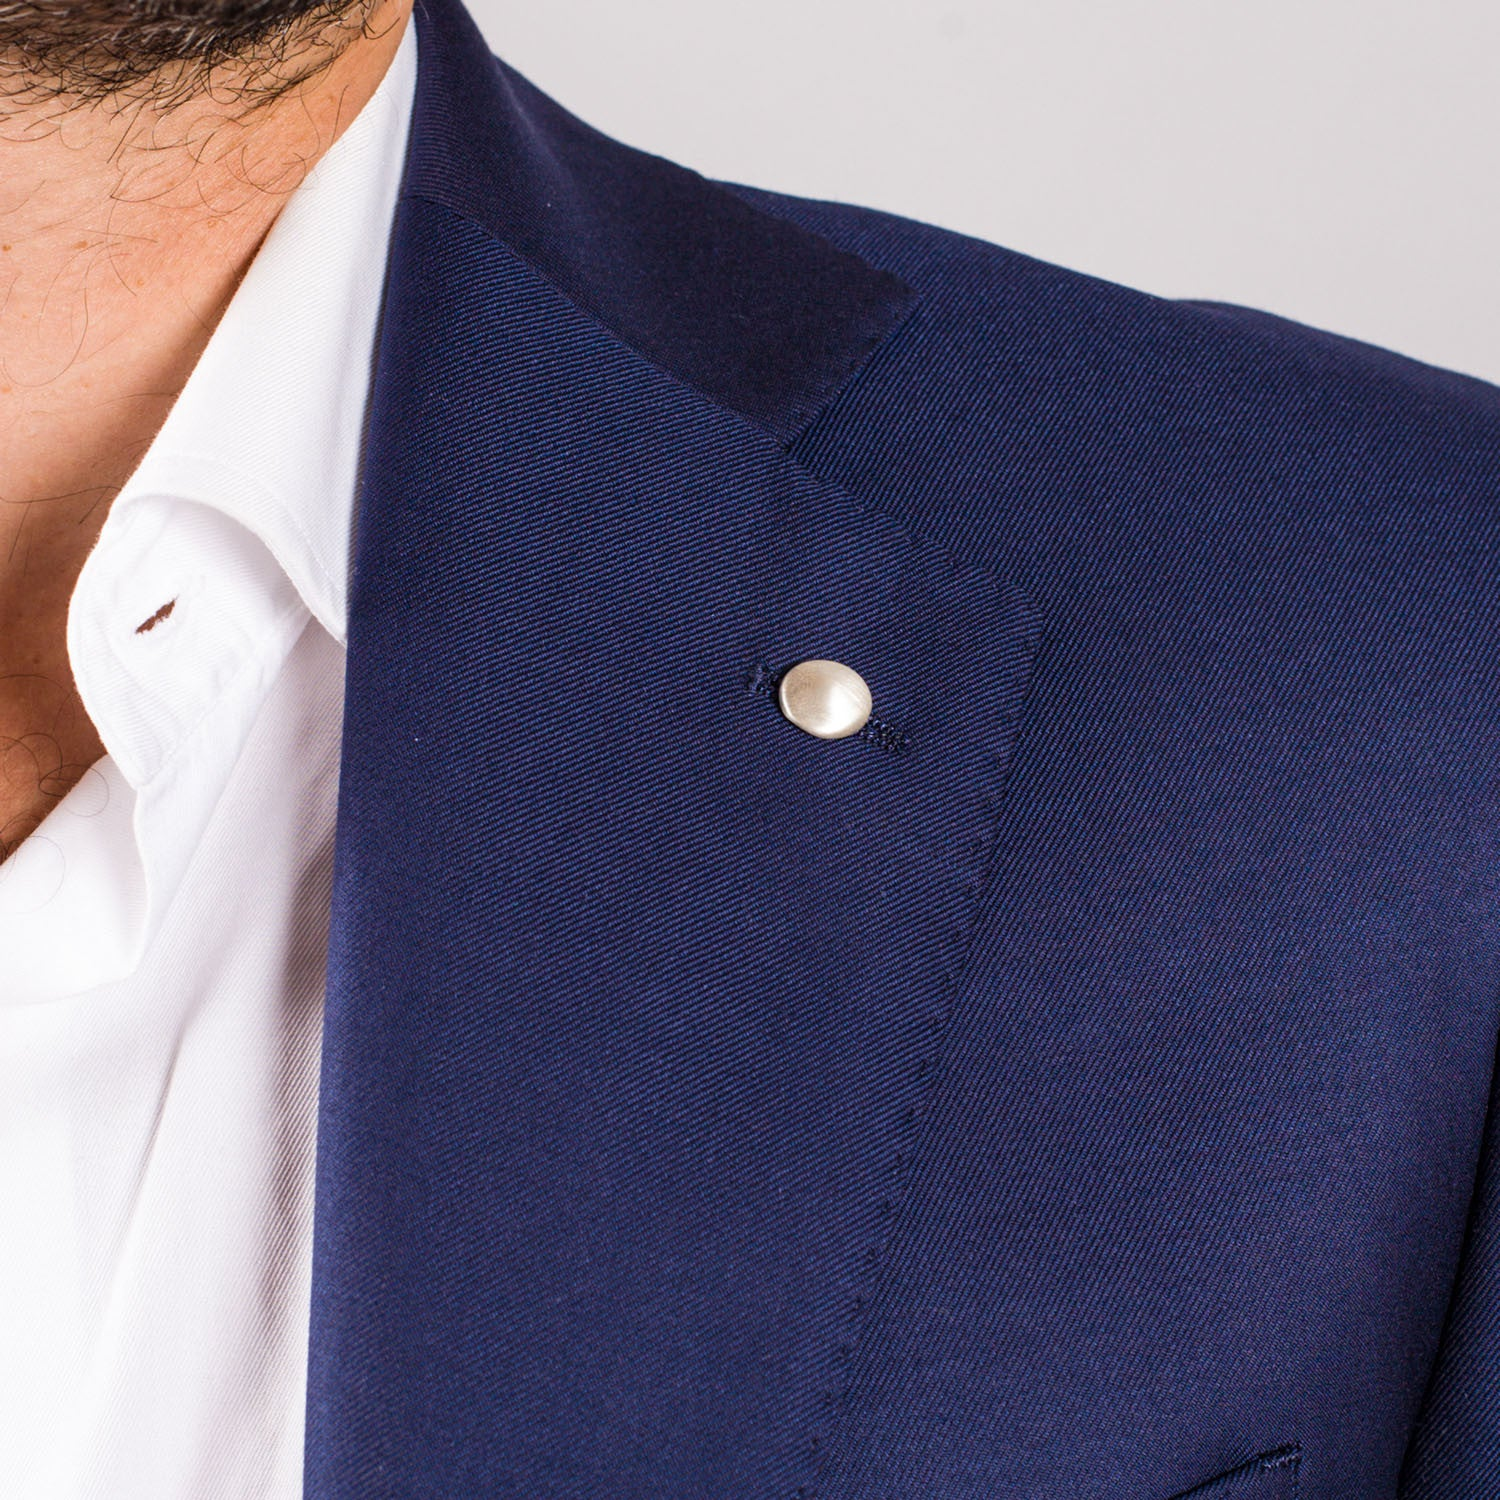 Men's Style - the buttonhole